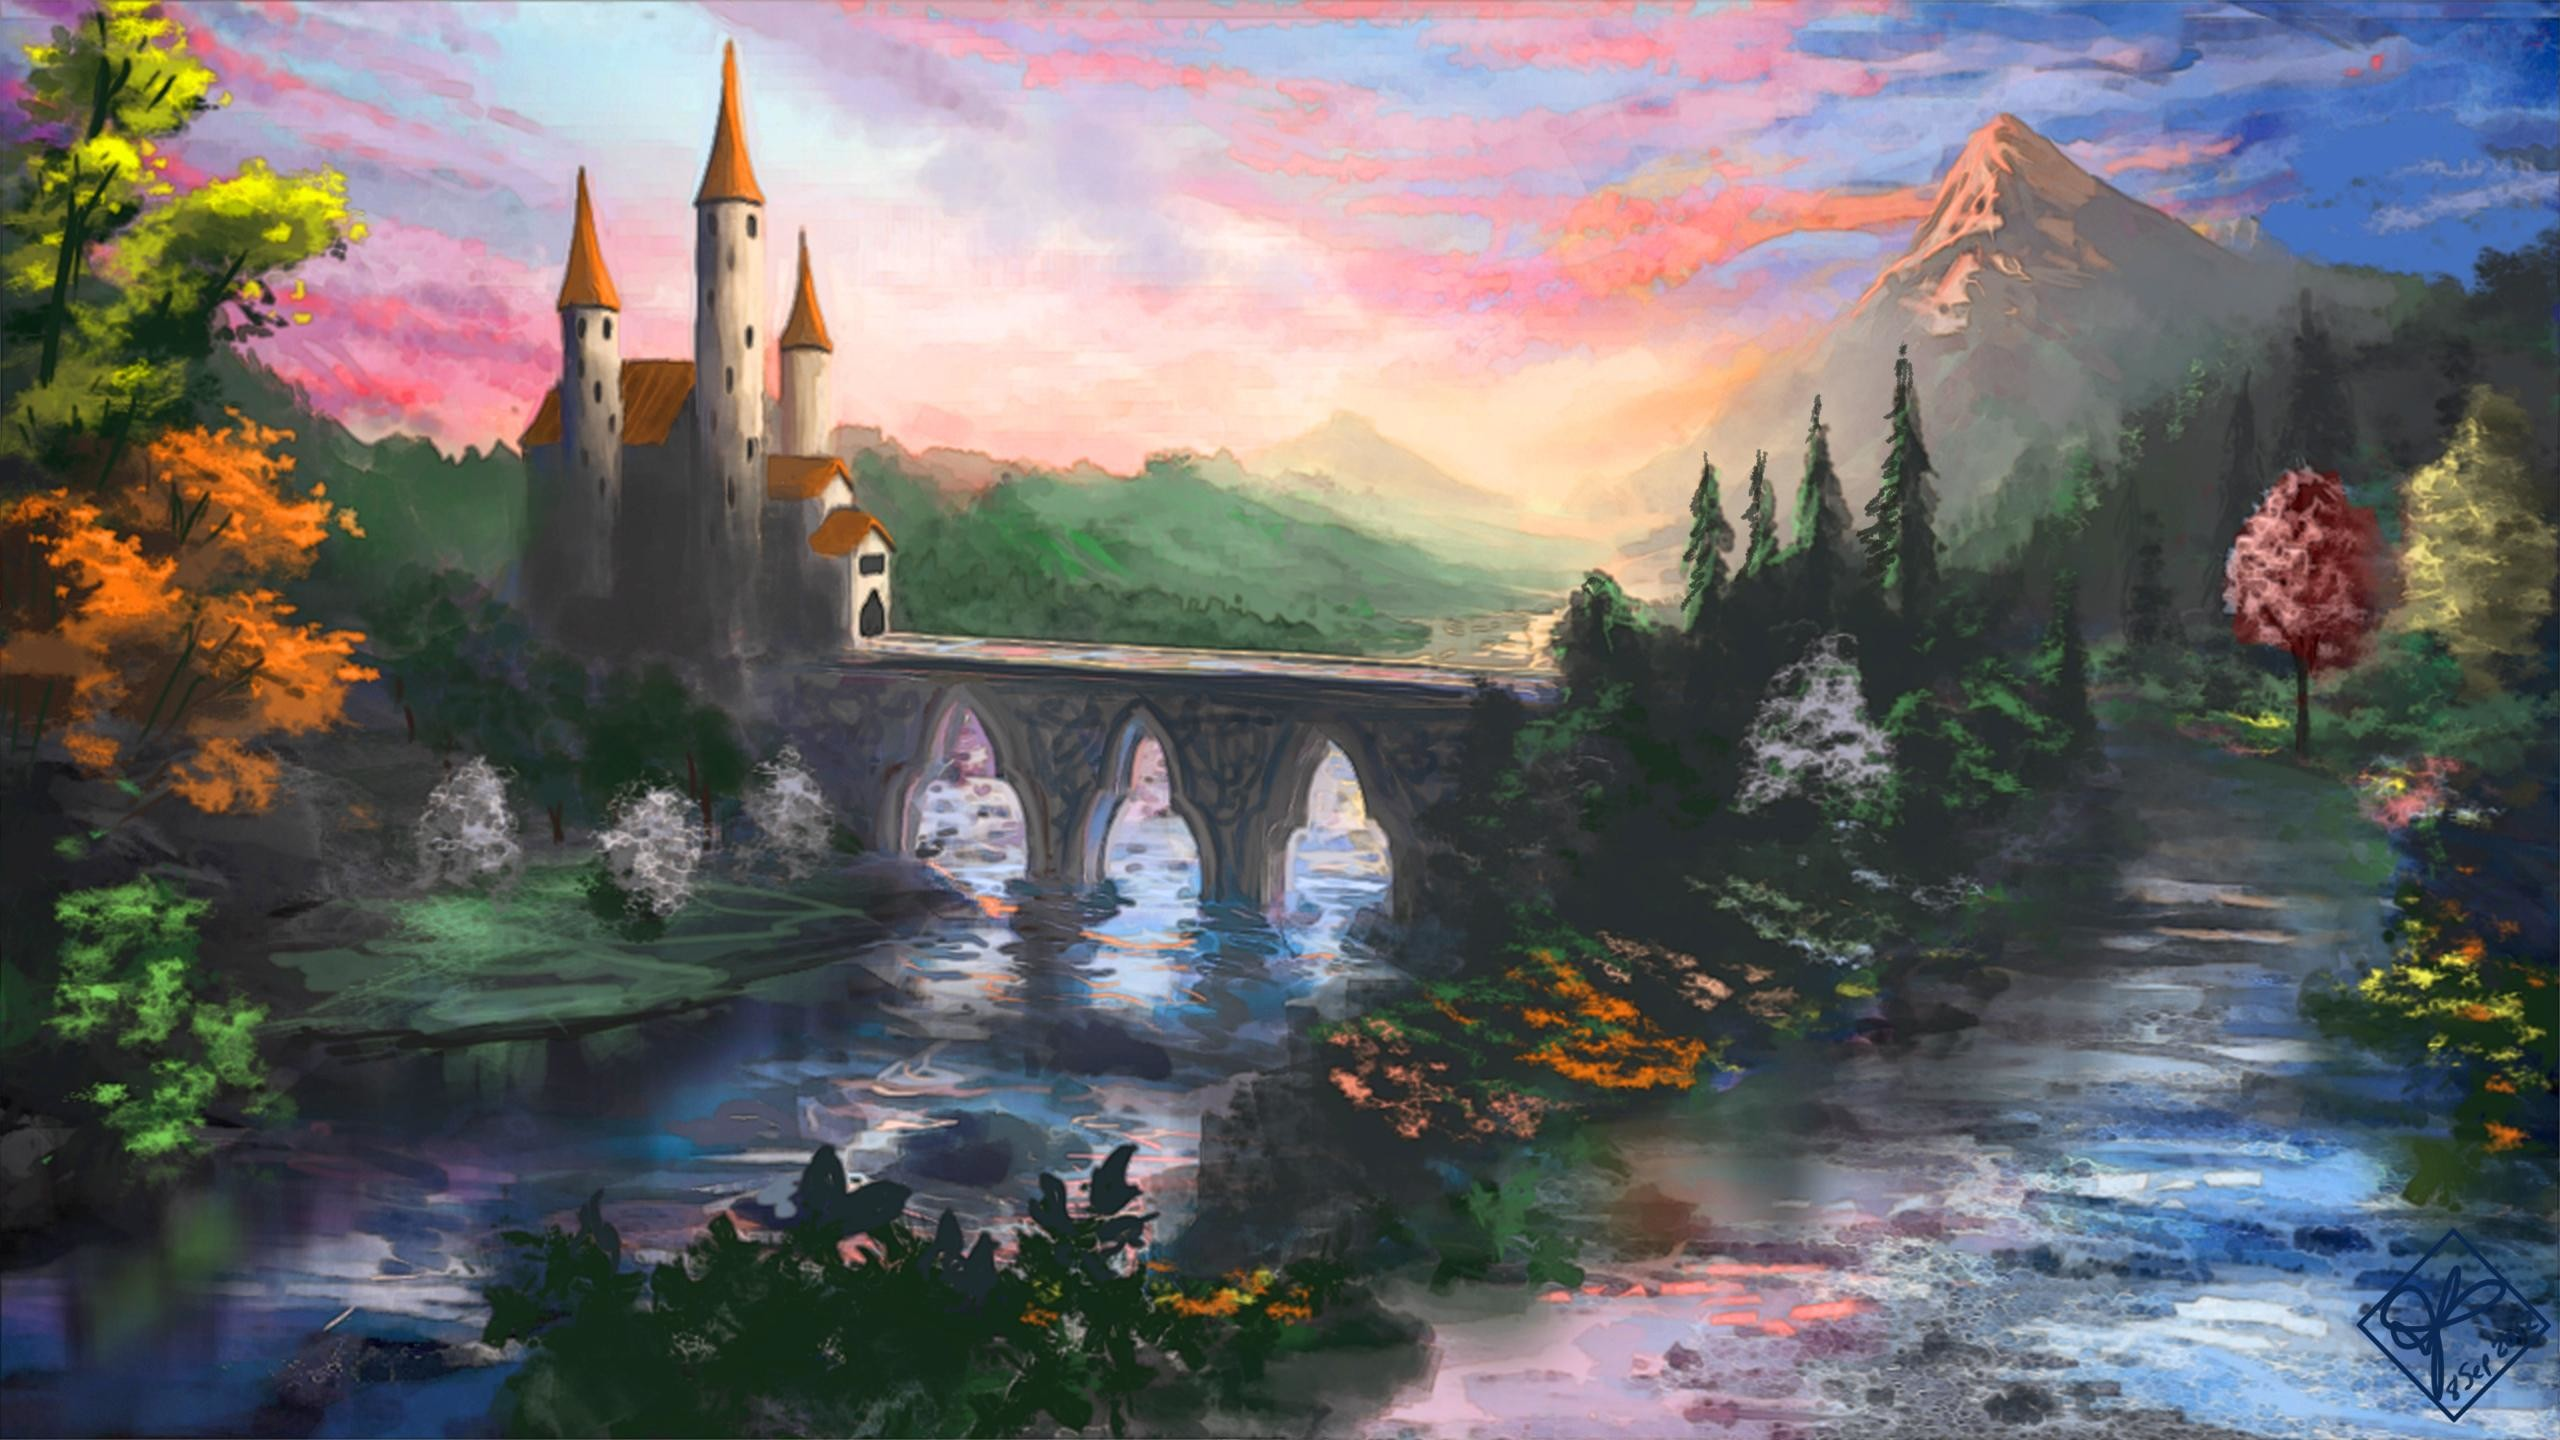 Res: 2560x1440, Fairytale castle - (#159600) - High Quality and Resolution .